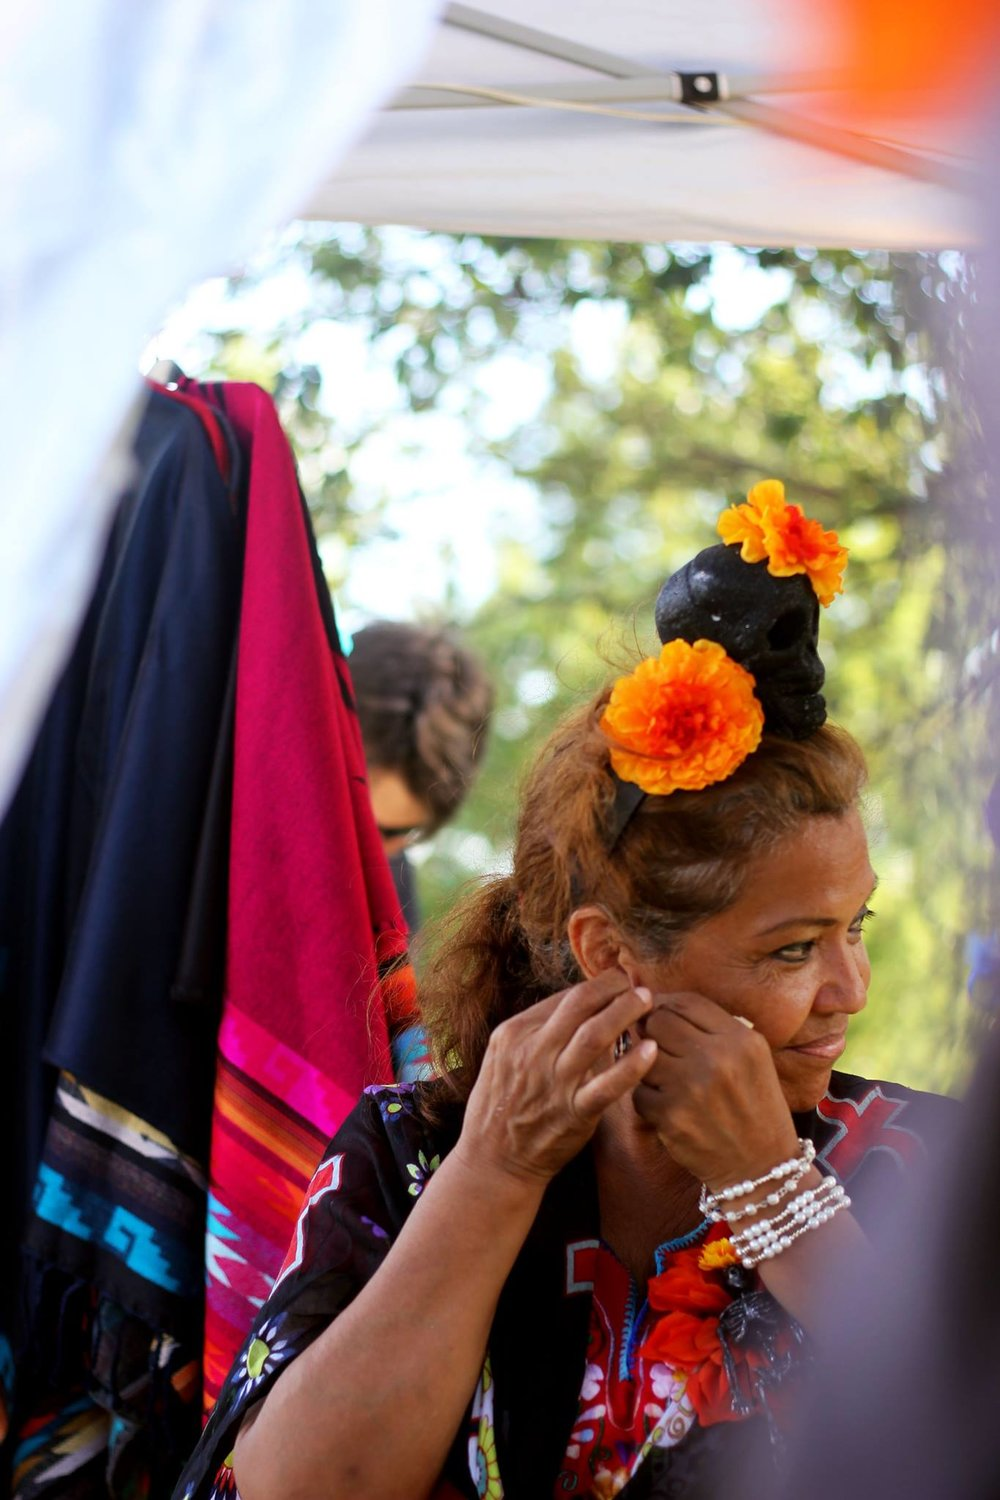 Many vendors made their way to the music festival bringing with them a variety of Mexican knick knacks like bags with the colors of the Mexican flag, traditional embroidered blouses, and jewelry. A vendor looks around while putting on her earrings.